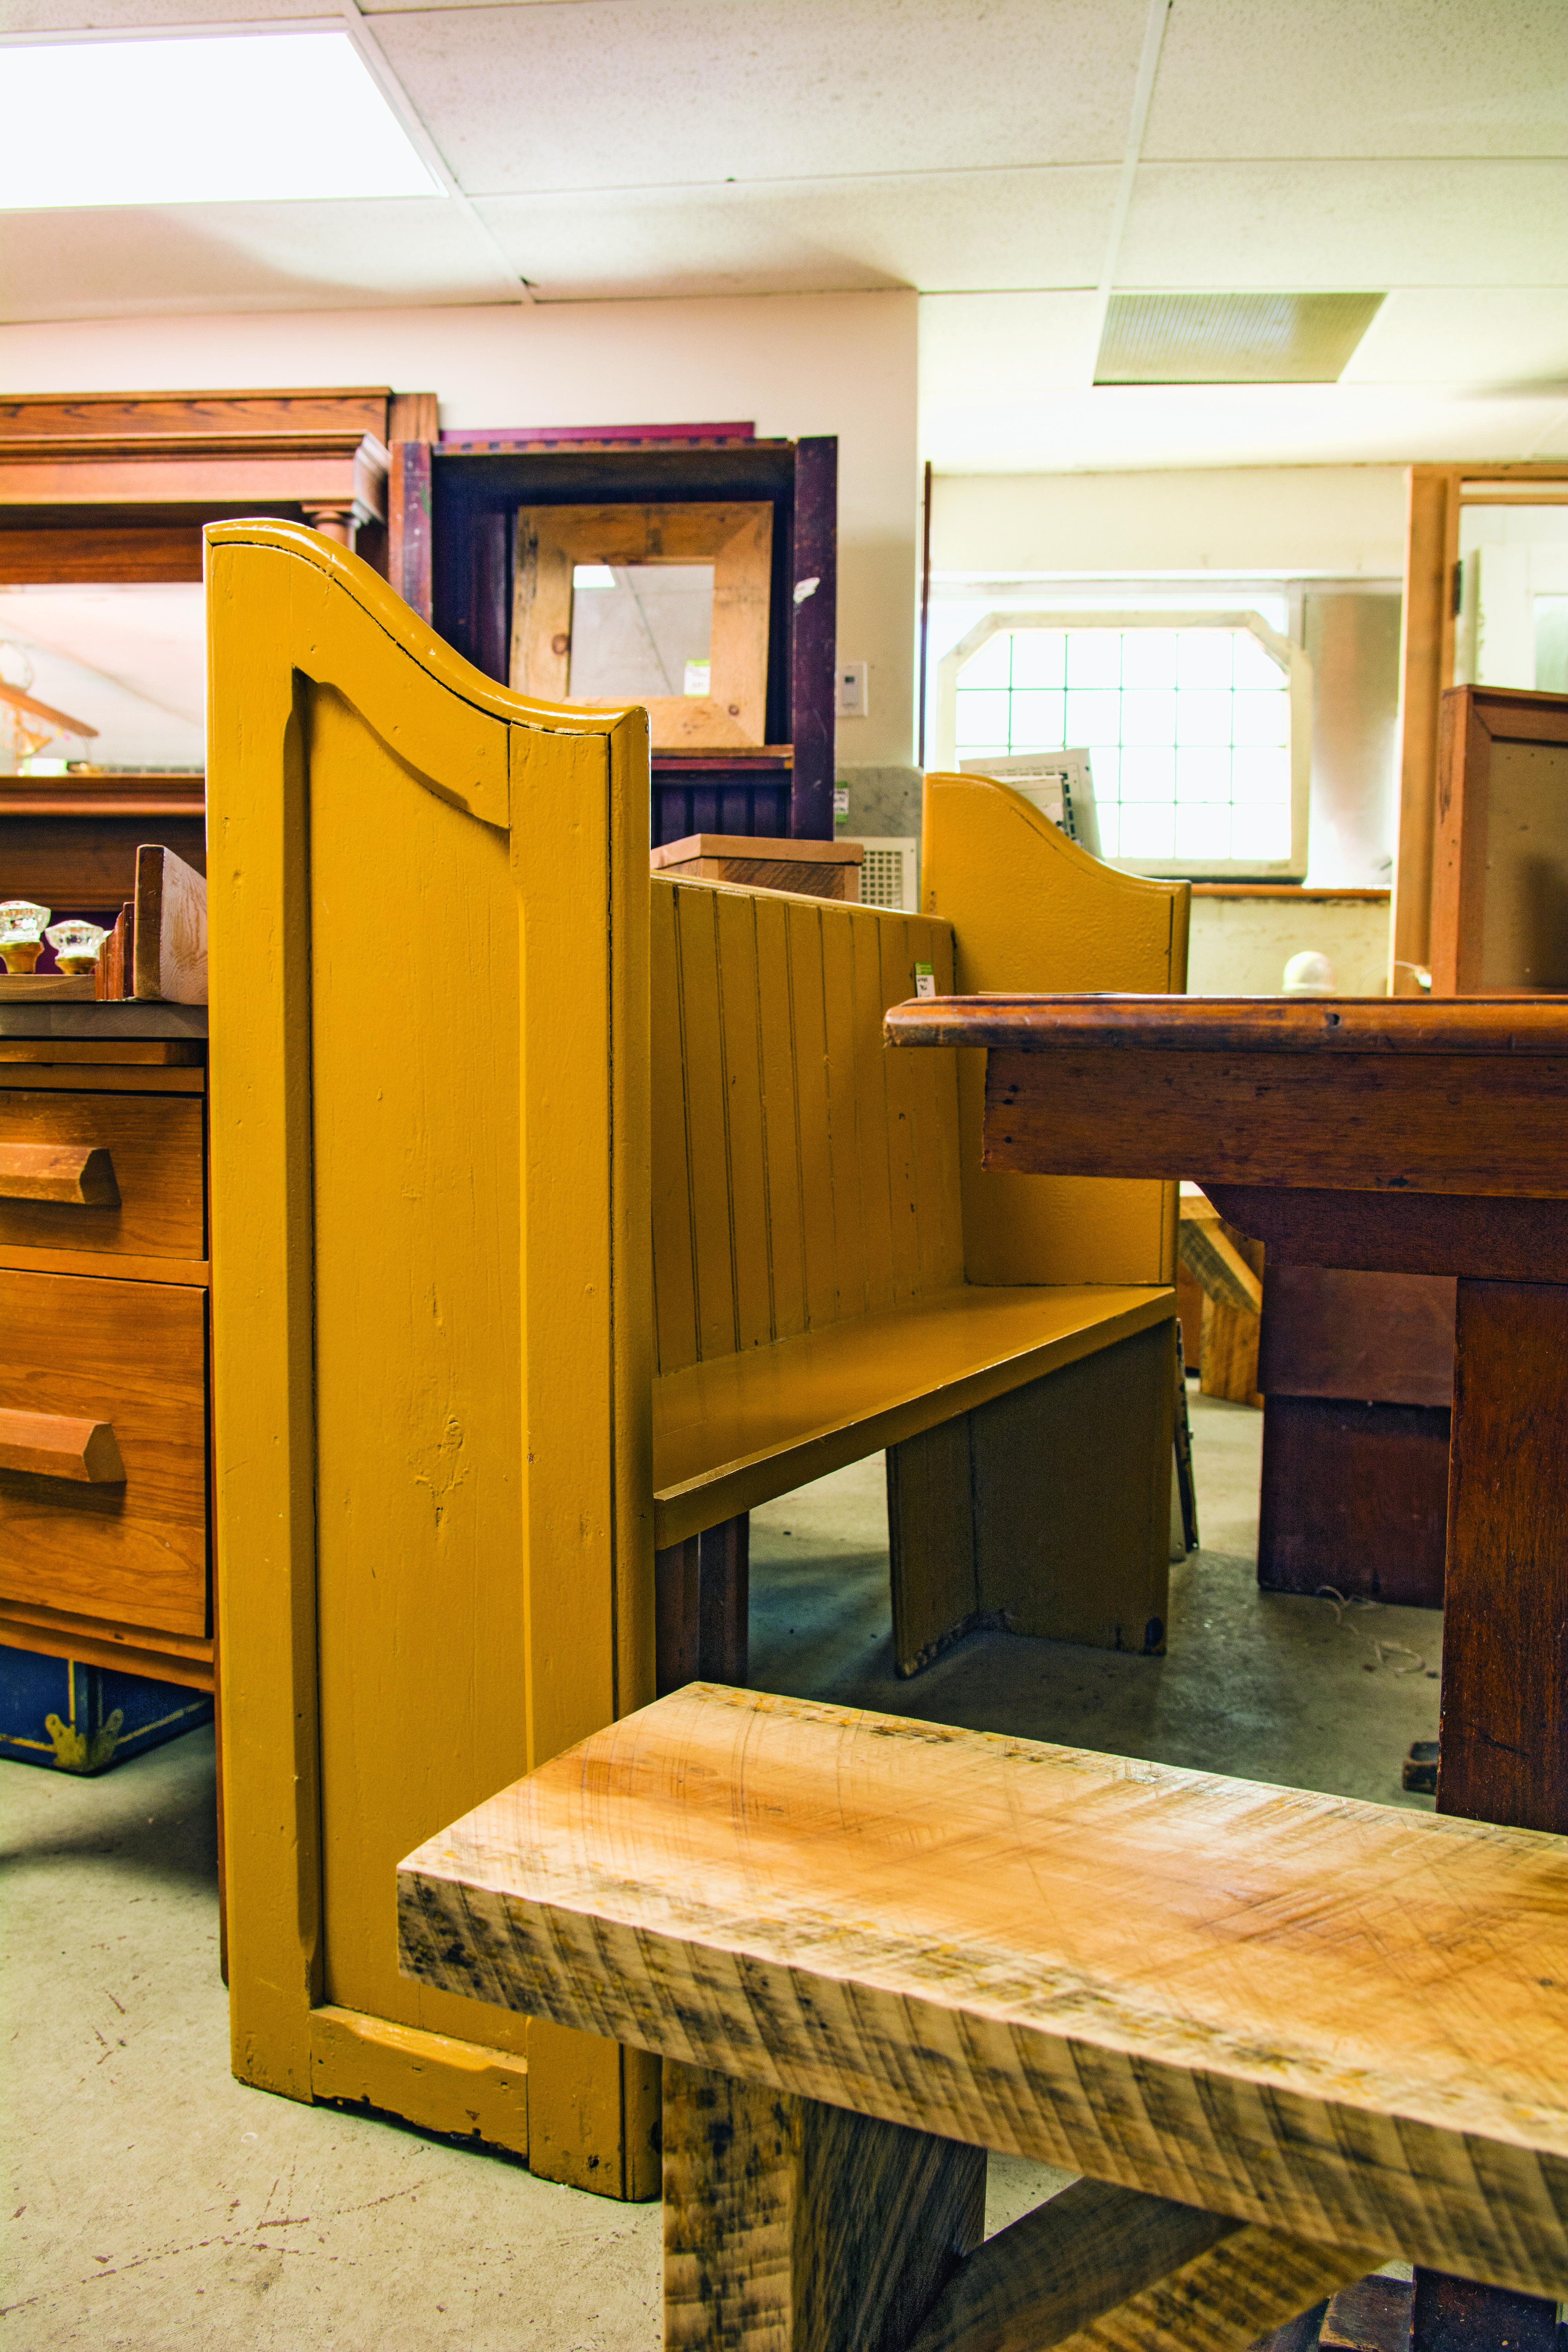 Vintage Home Decor On A Budget Knob And Tube Wiring Toronto Pious Pews